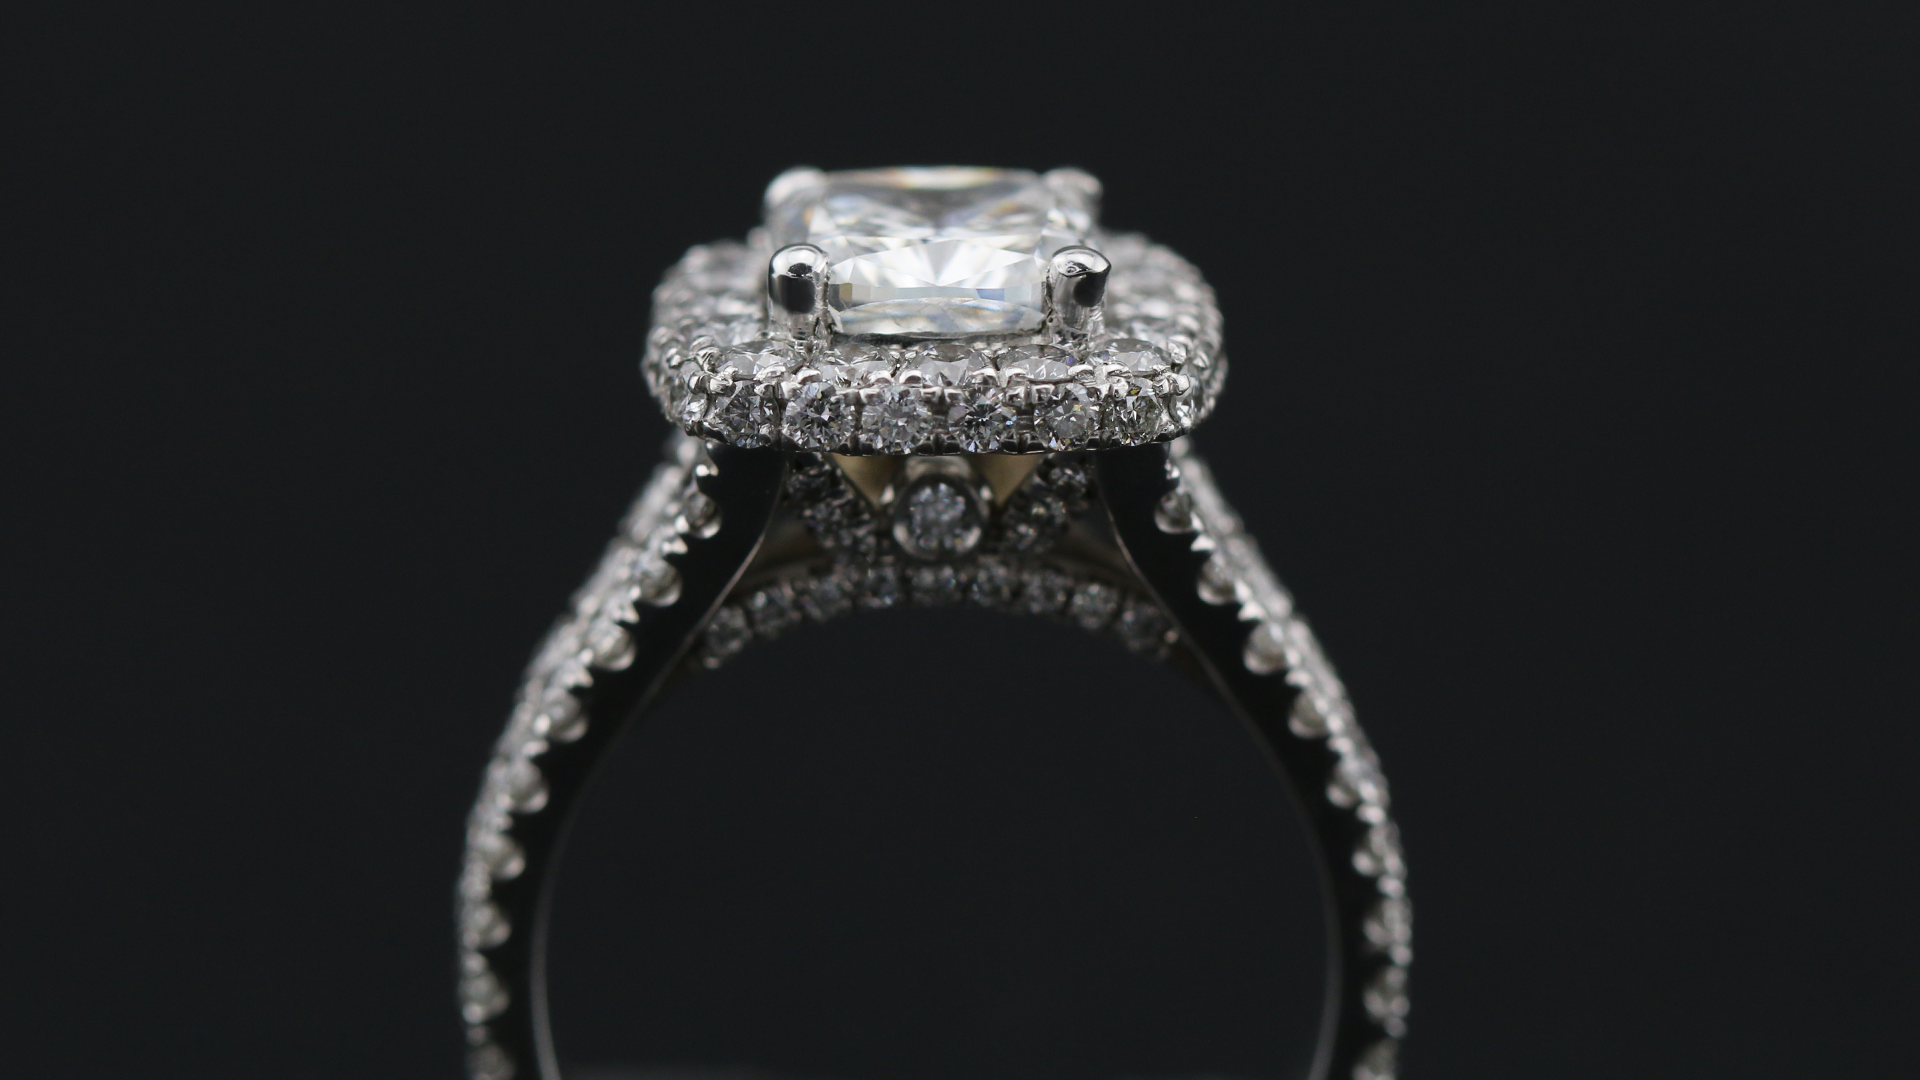 19K White Gold Split Shank 3D Halo Engagement Ring